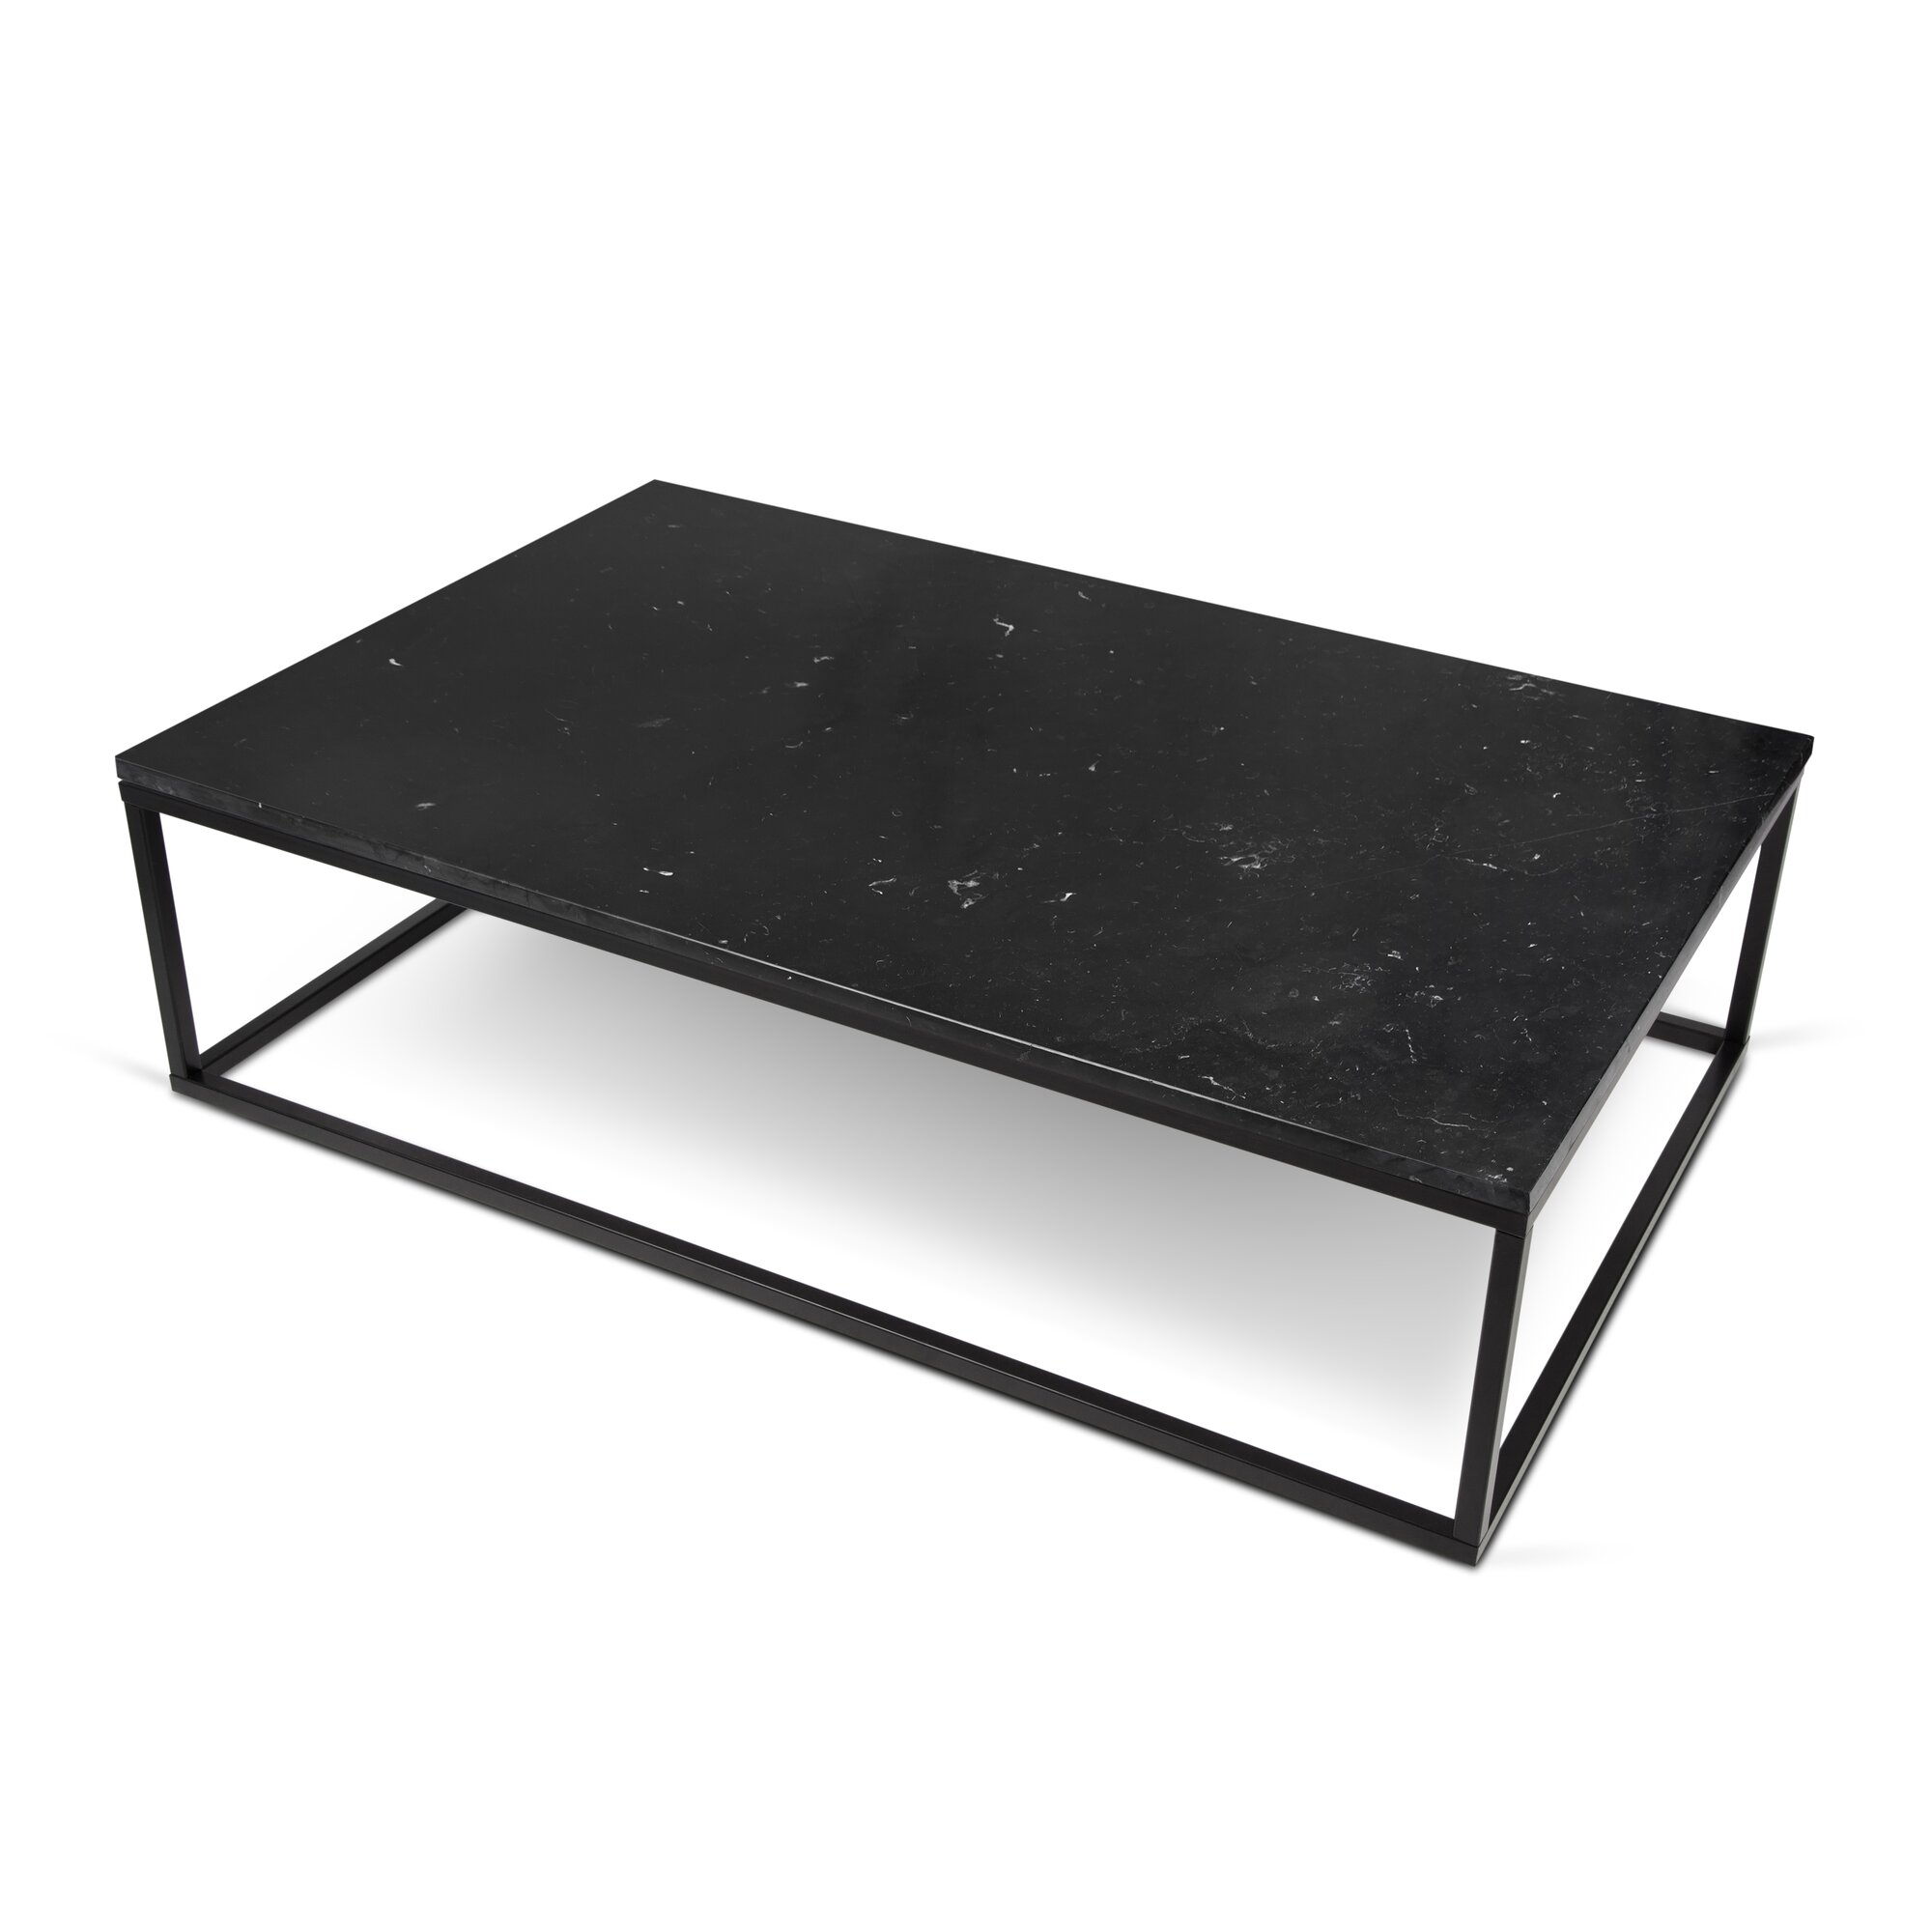 Prairie coffee table reviews allmodern - Table basse rectangulaire noire ...